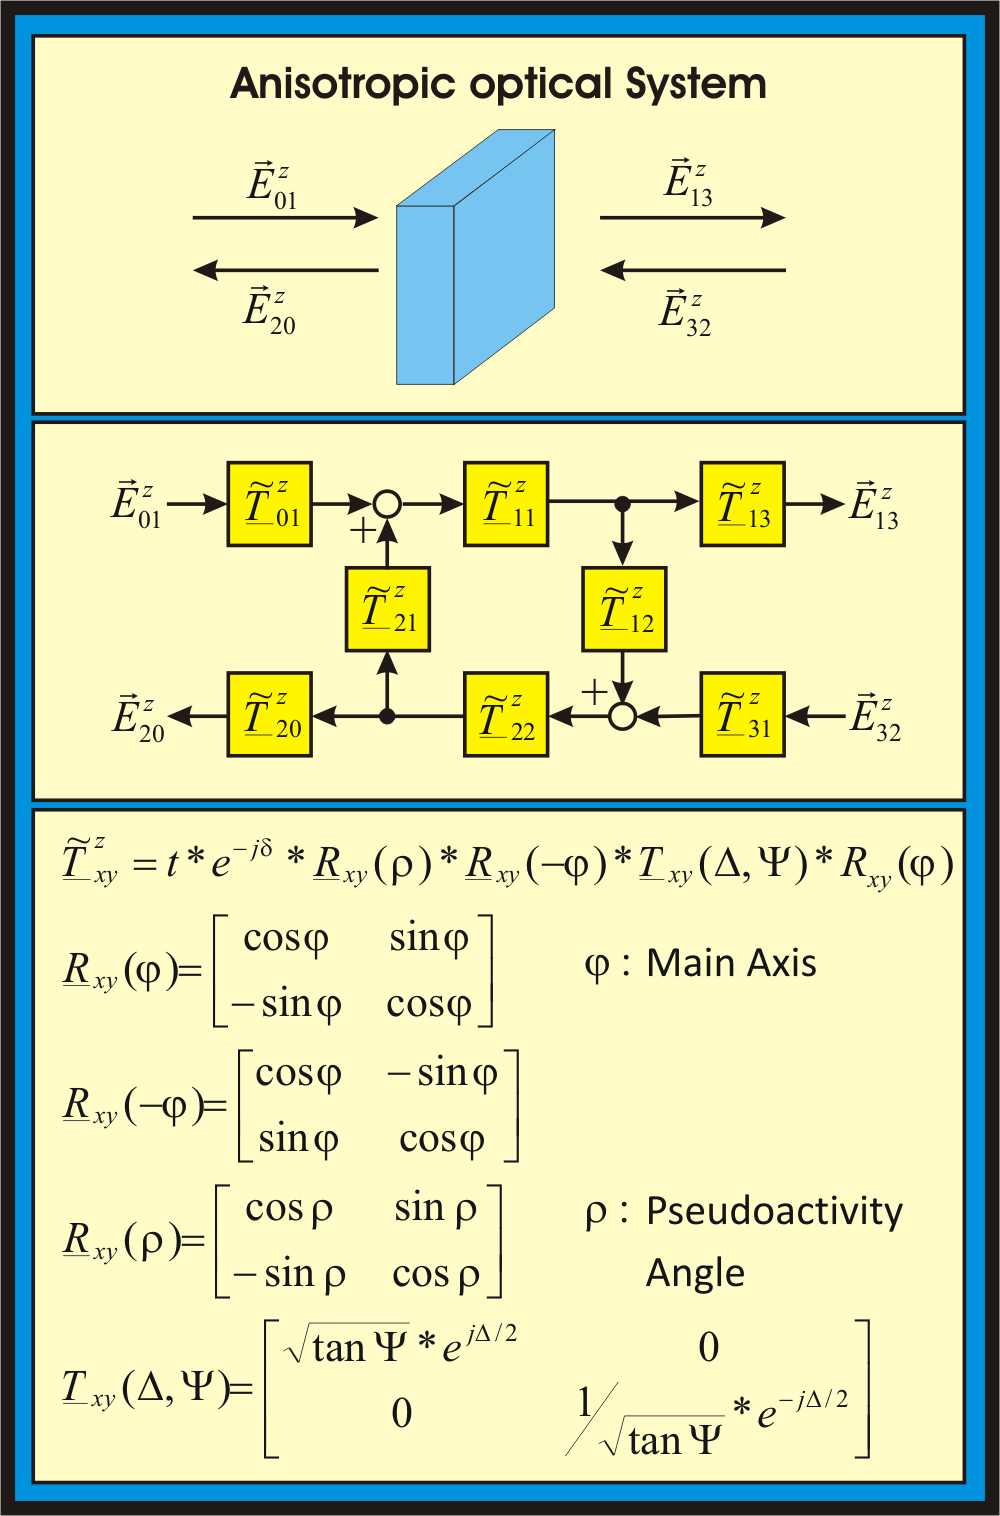 An anisotropic optical system can be described in transmission or reflection by a combination of Jones matrices. Each system (transmission or reflection) can be reduced to a single Jones matrix of same type.